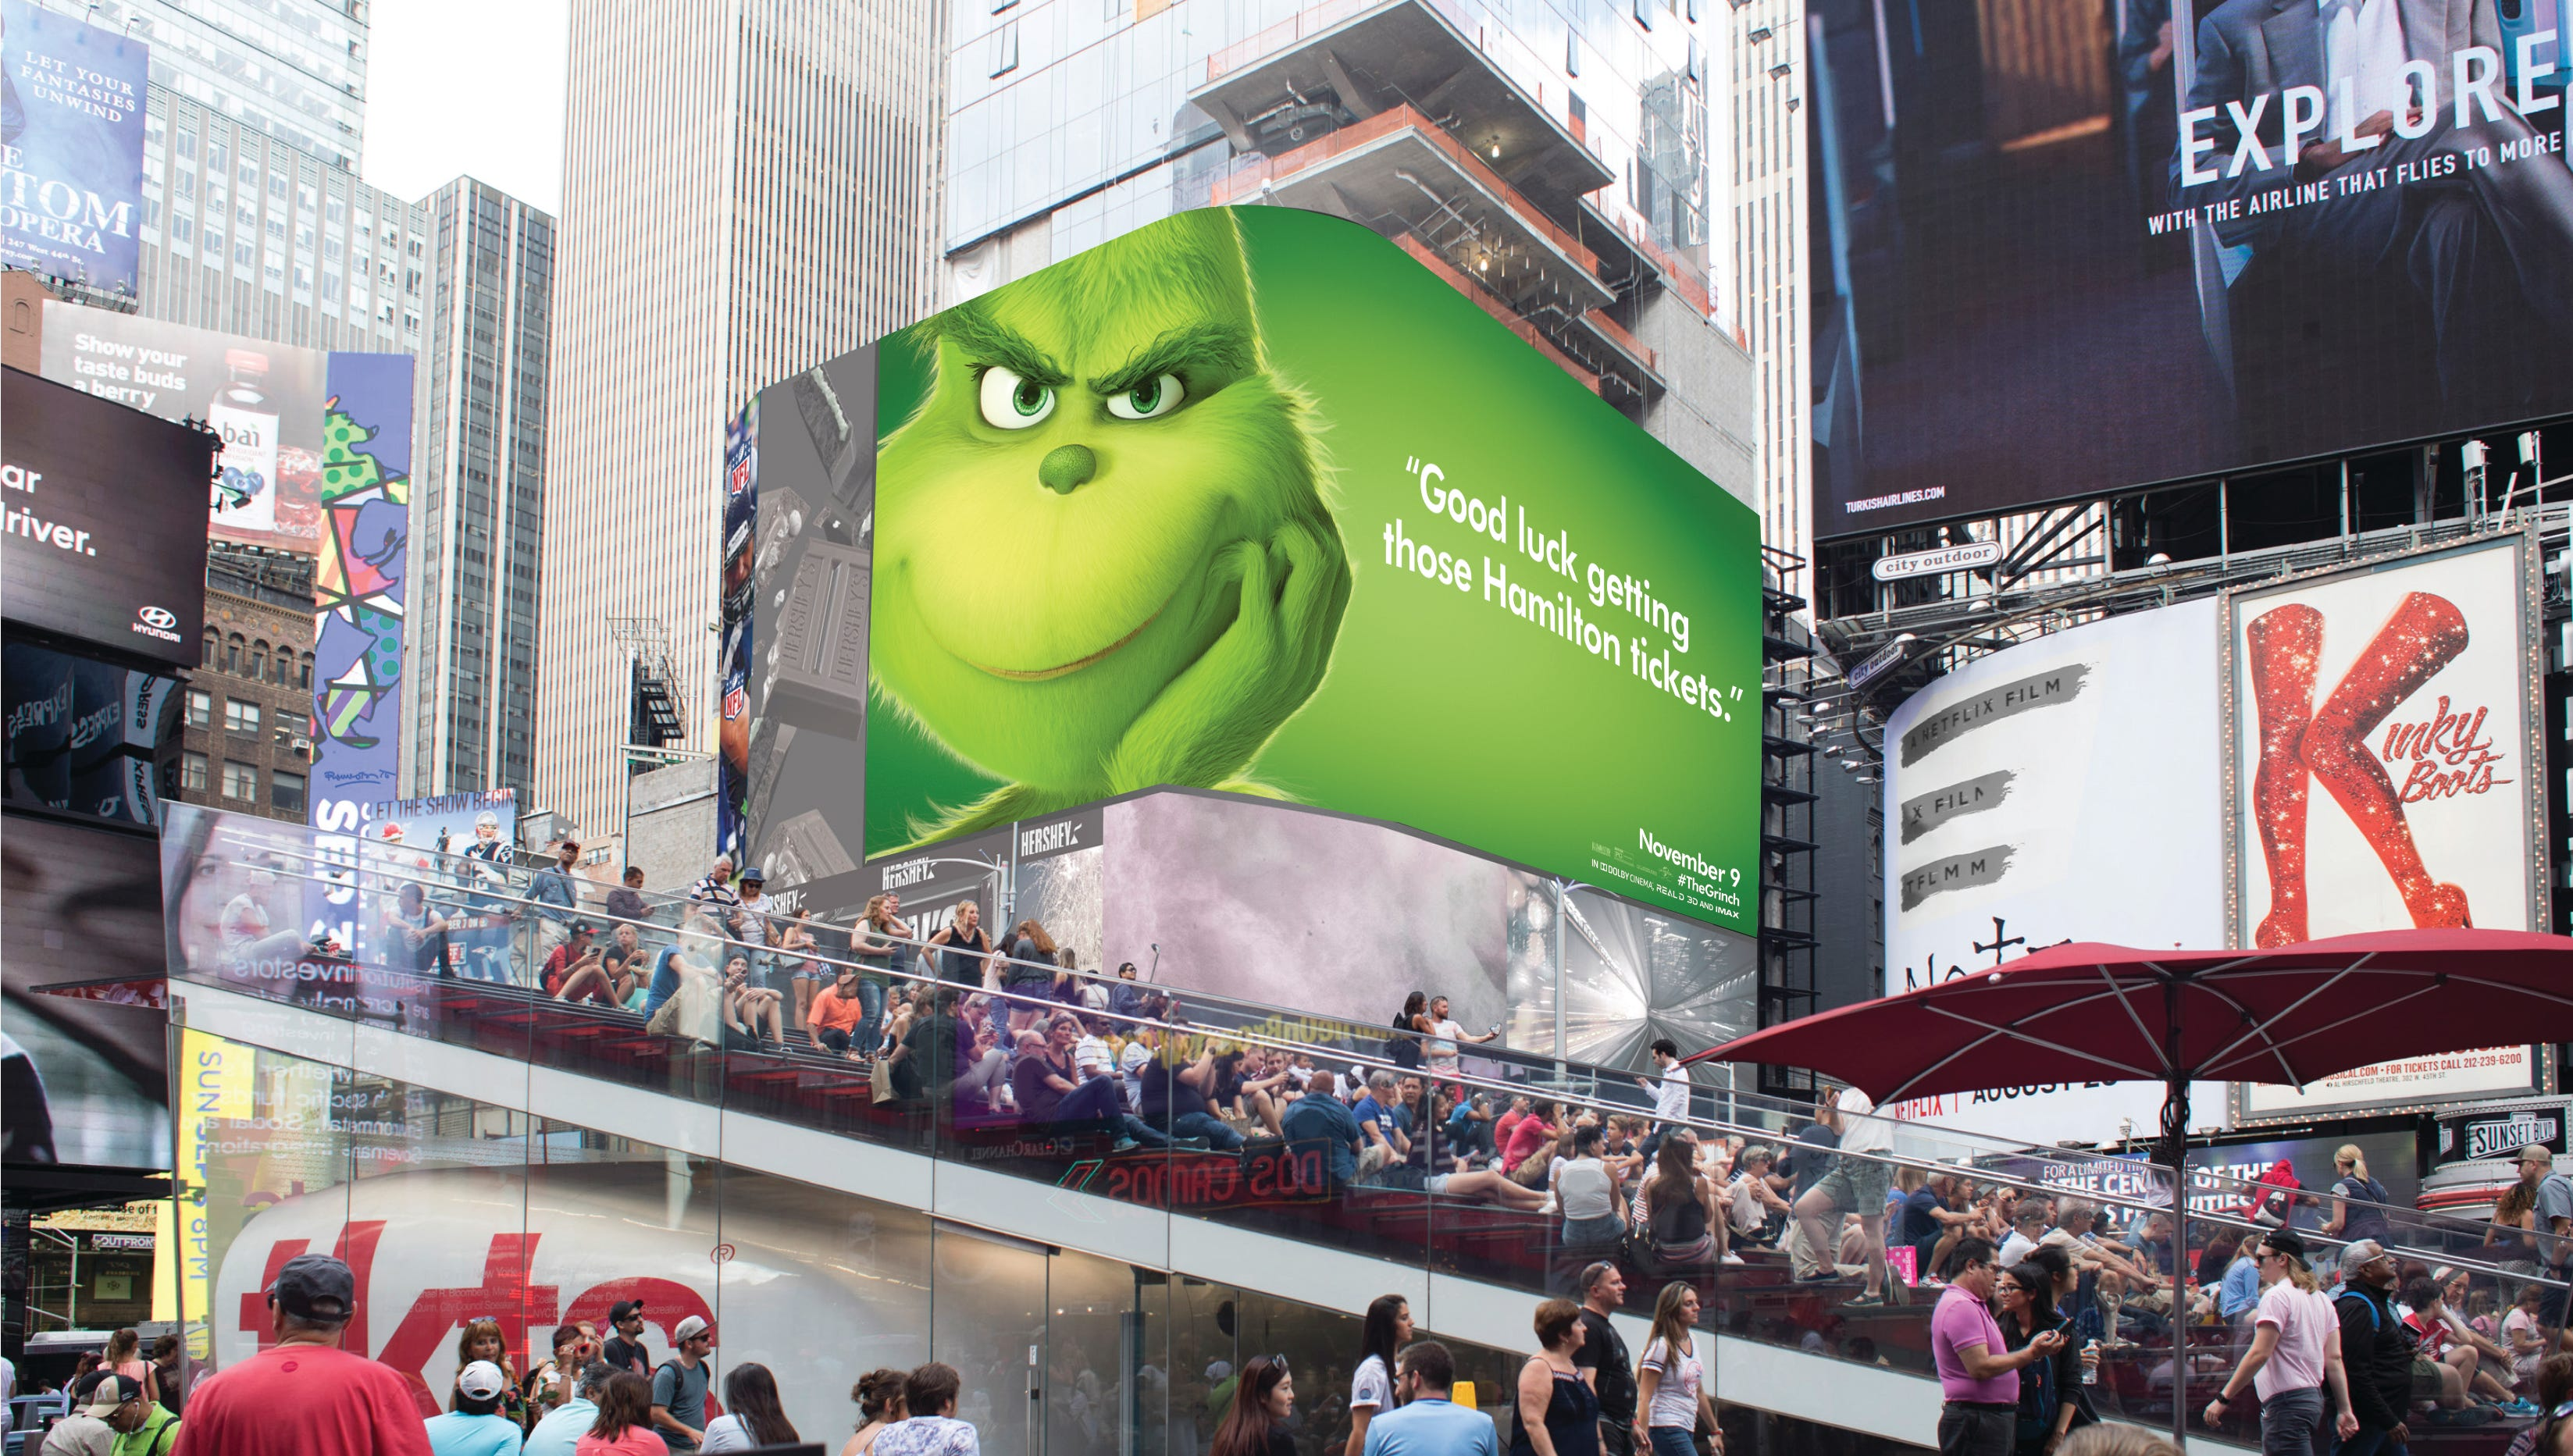 'The Grinch' sneers at American cities from billboards: His most withering cutdowns